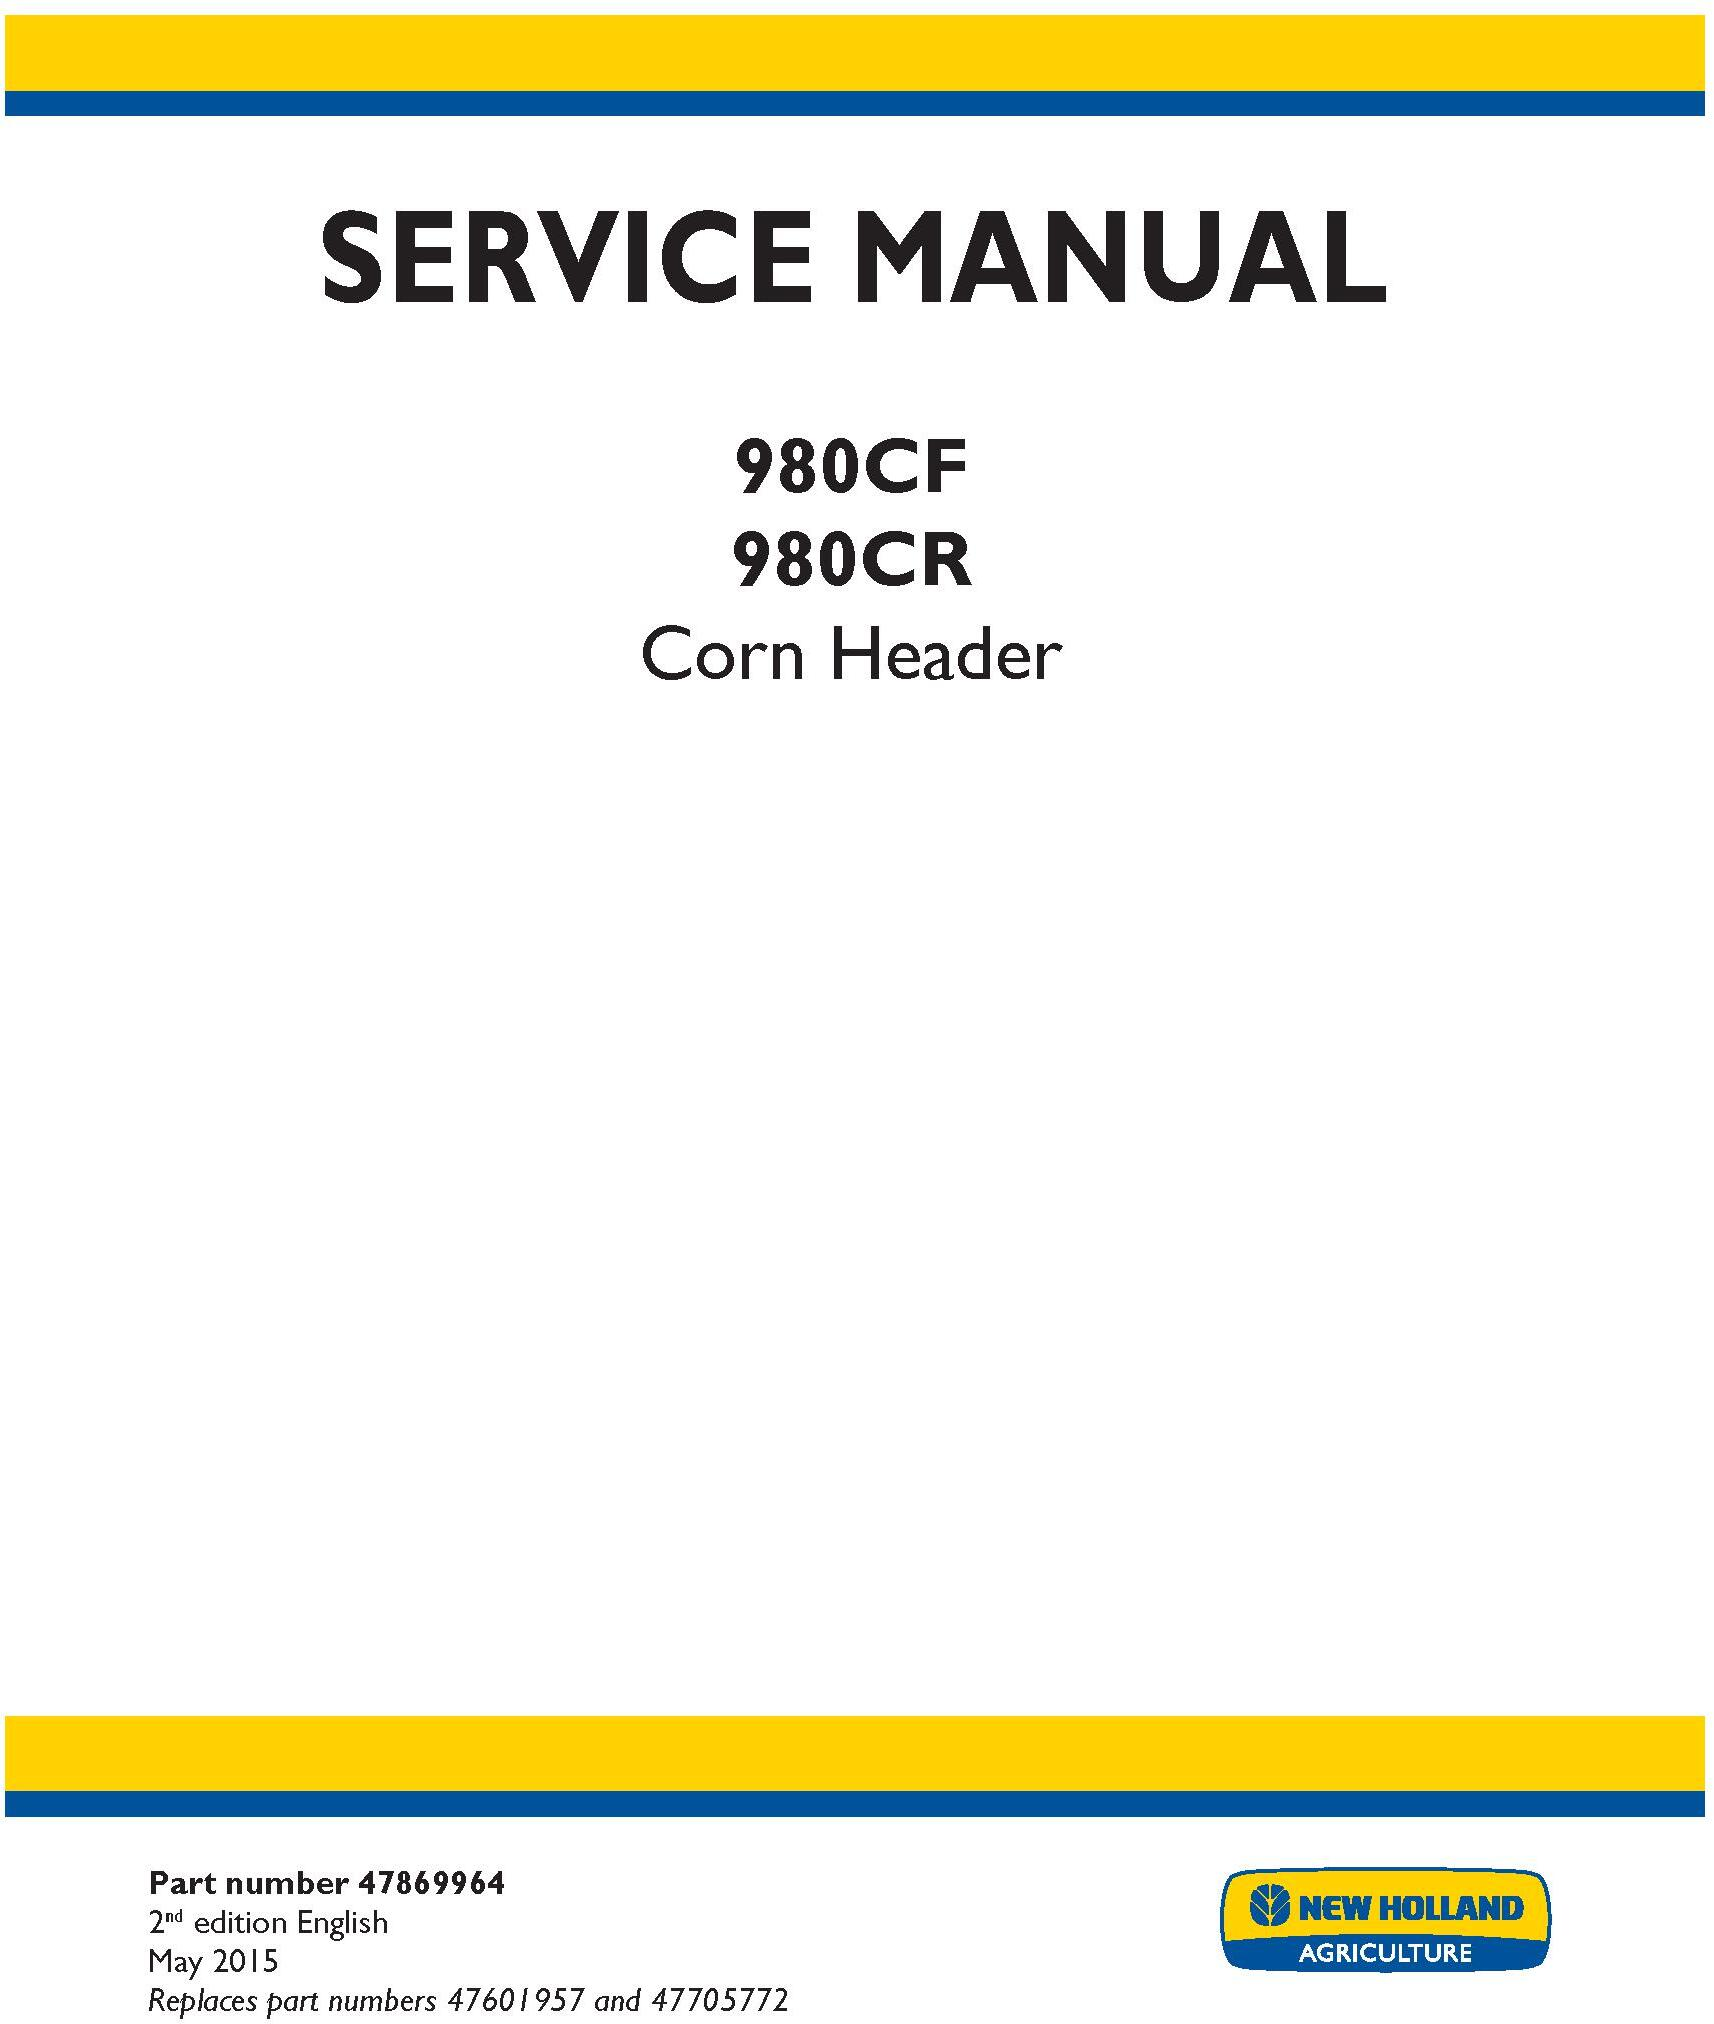 New Holland 980CF, 980CR Corn header Service Manual - 20042